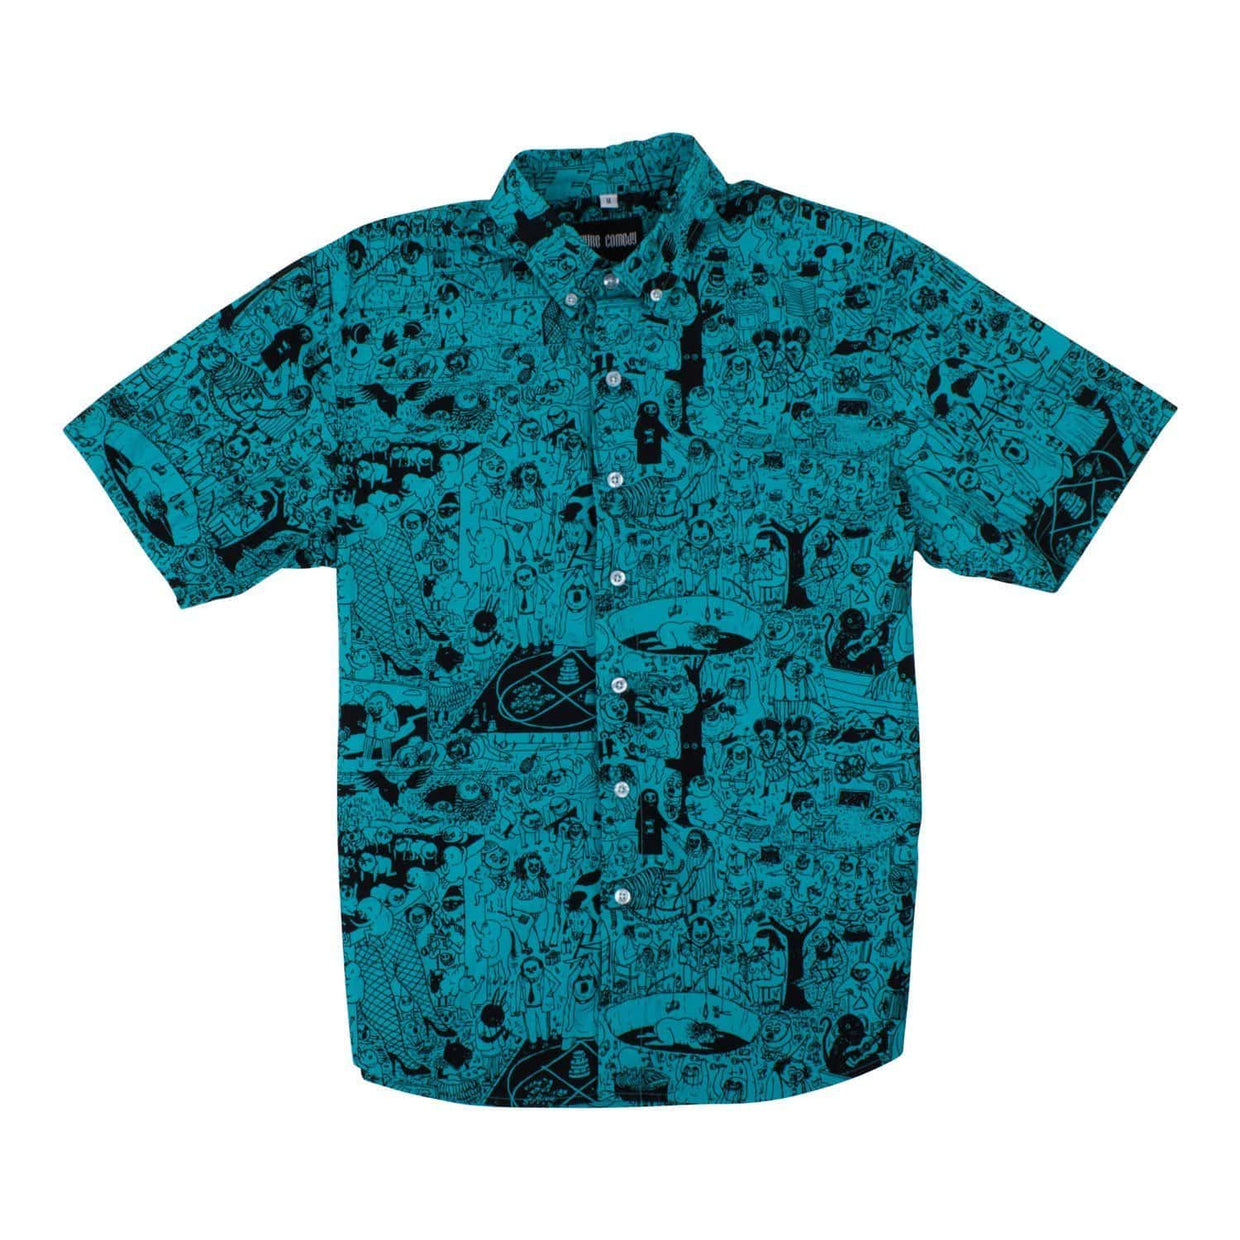 PC Short Sleeve Unisex Oxford Button Up Shirt - Teal